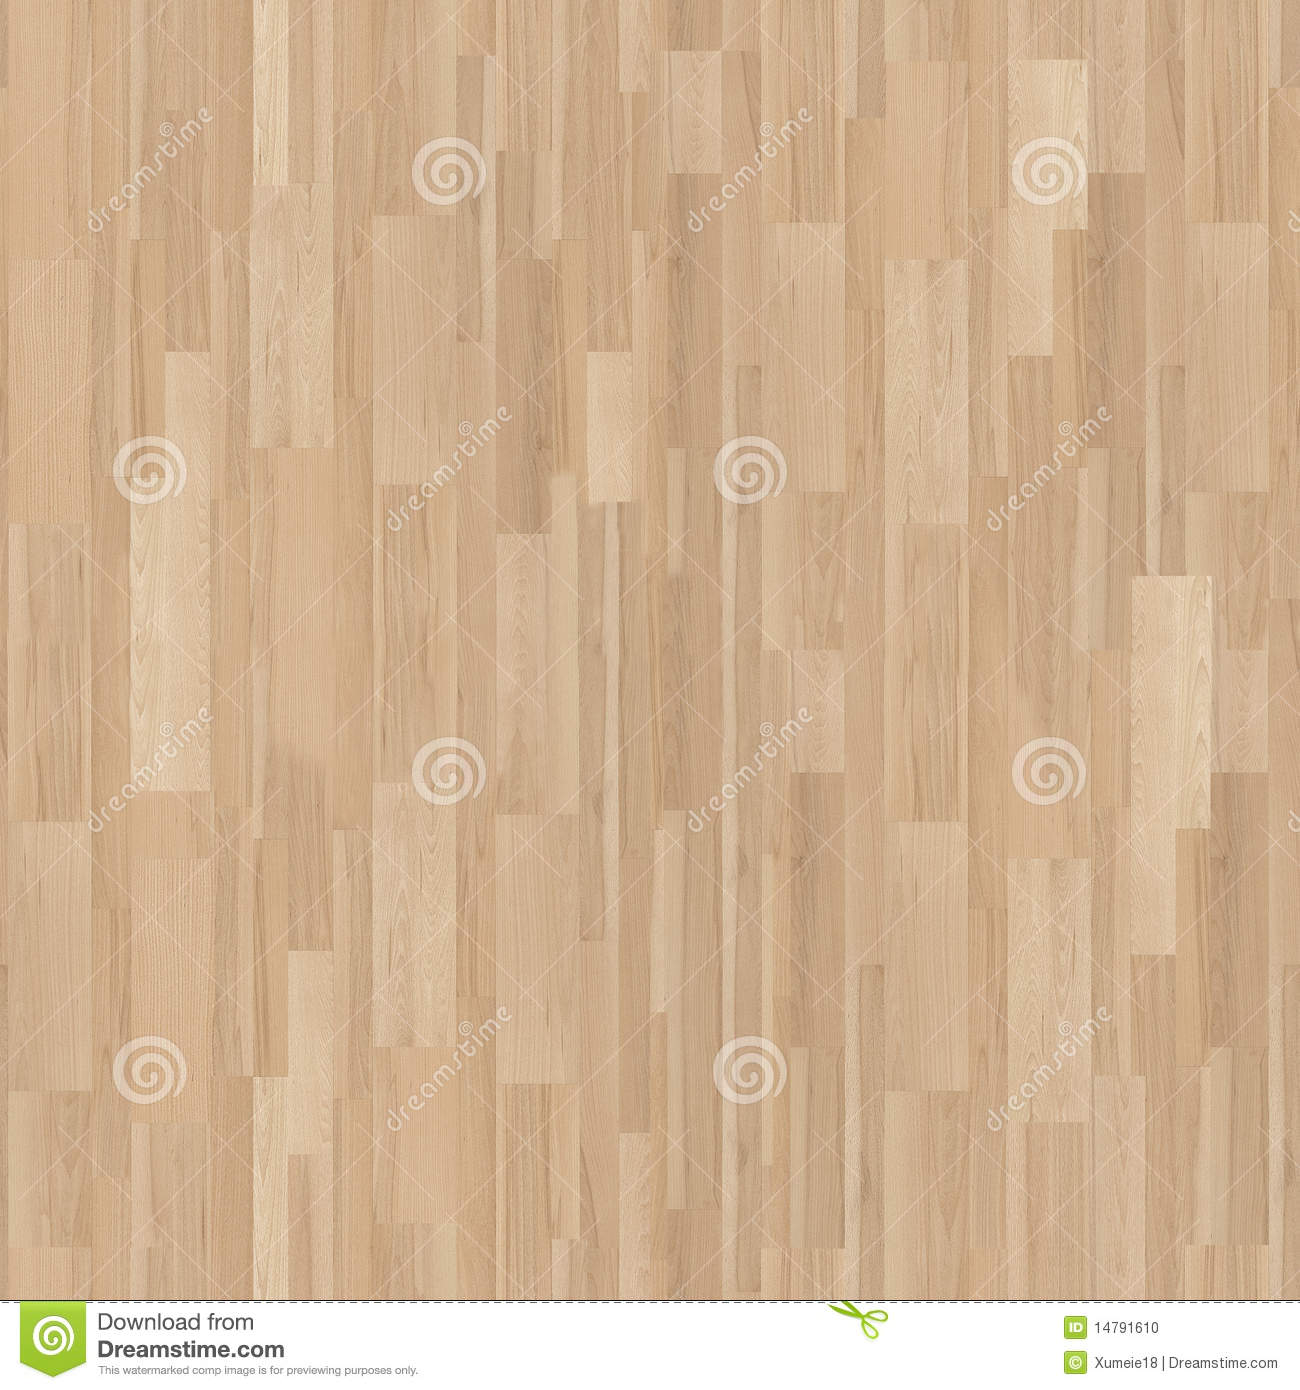 Light gray curtains - Wood Floor Texture Stock Photo Image 14791610